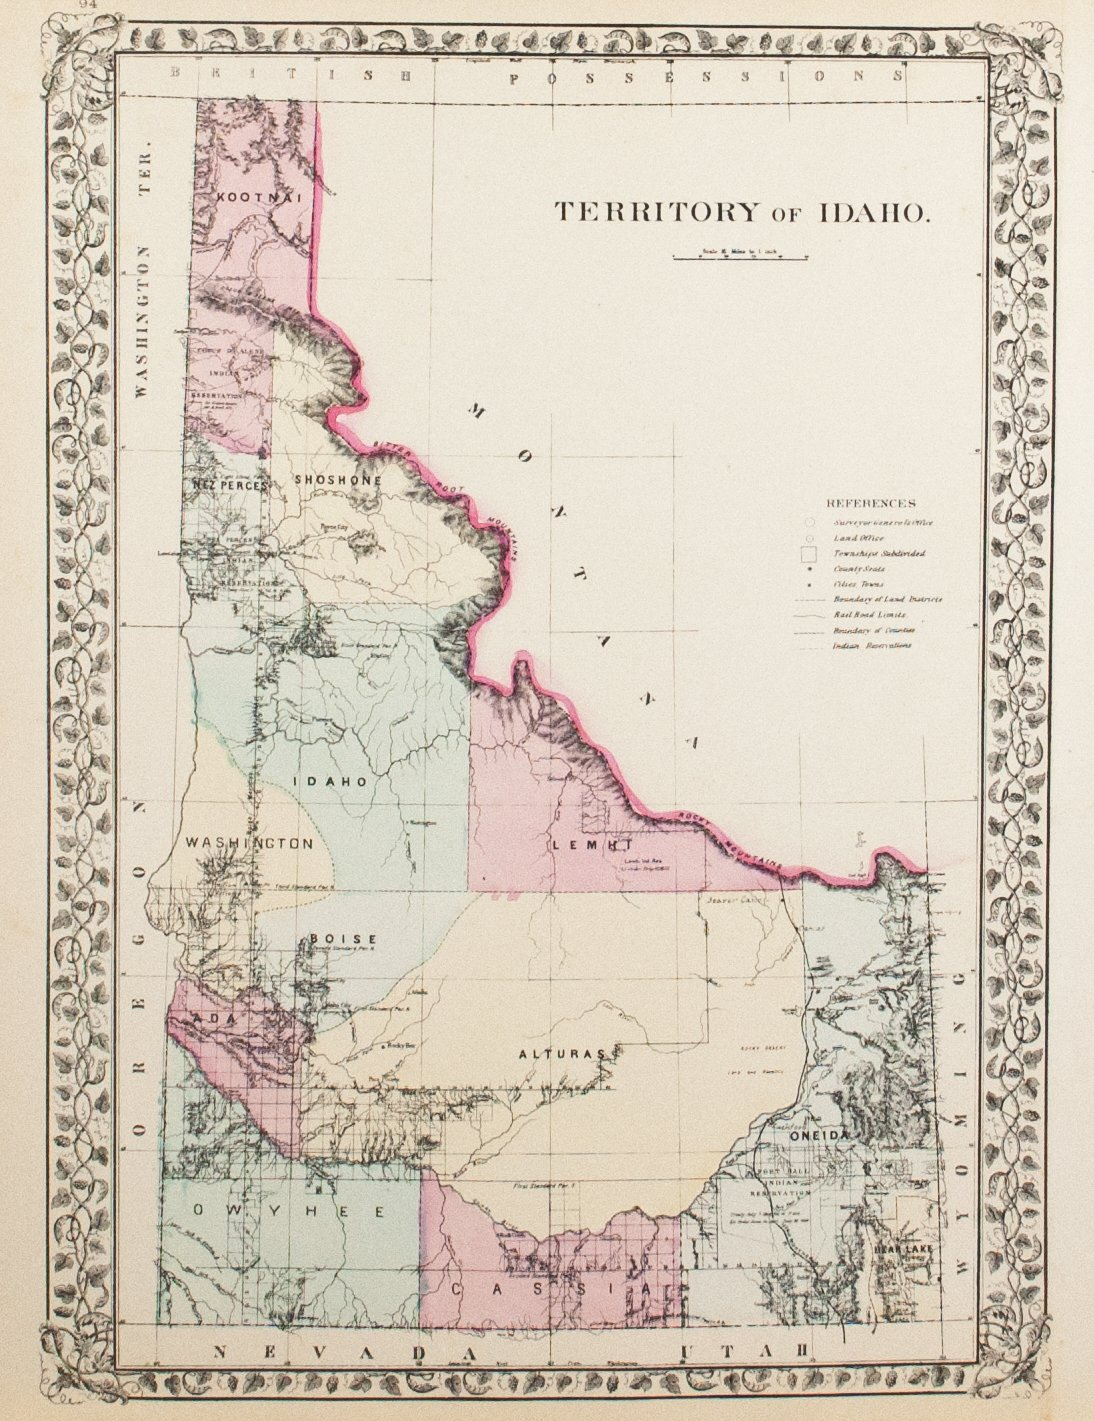 1881 Territory of Idaho - S Mitchell Jr